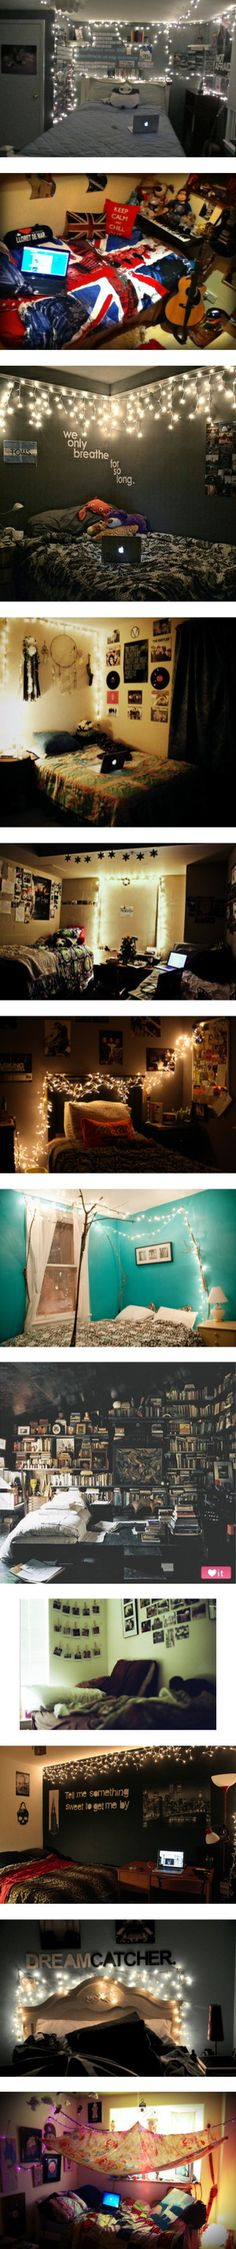 """Indie/Hipster Bedroom Inspiration"" .."